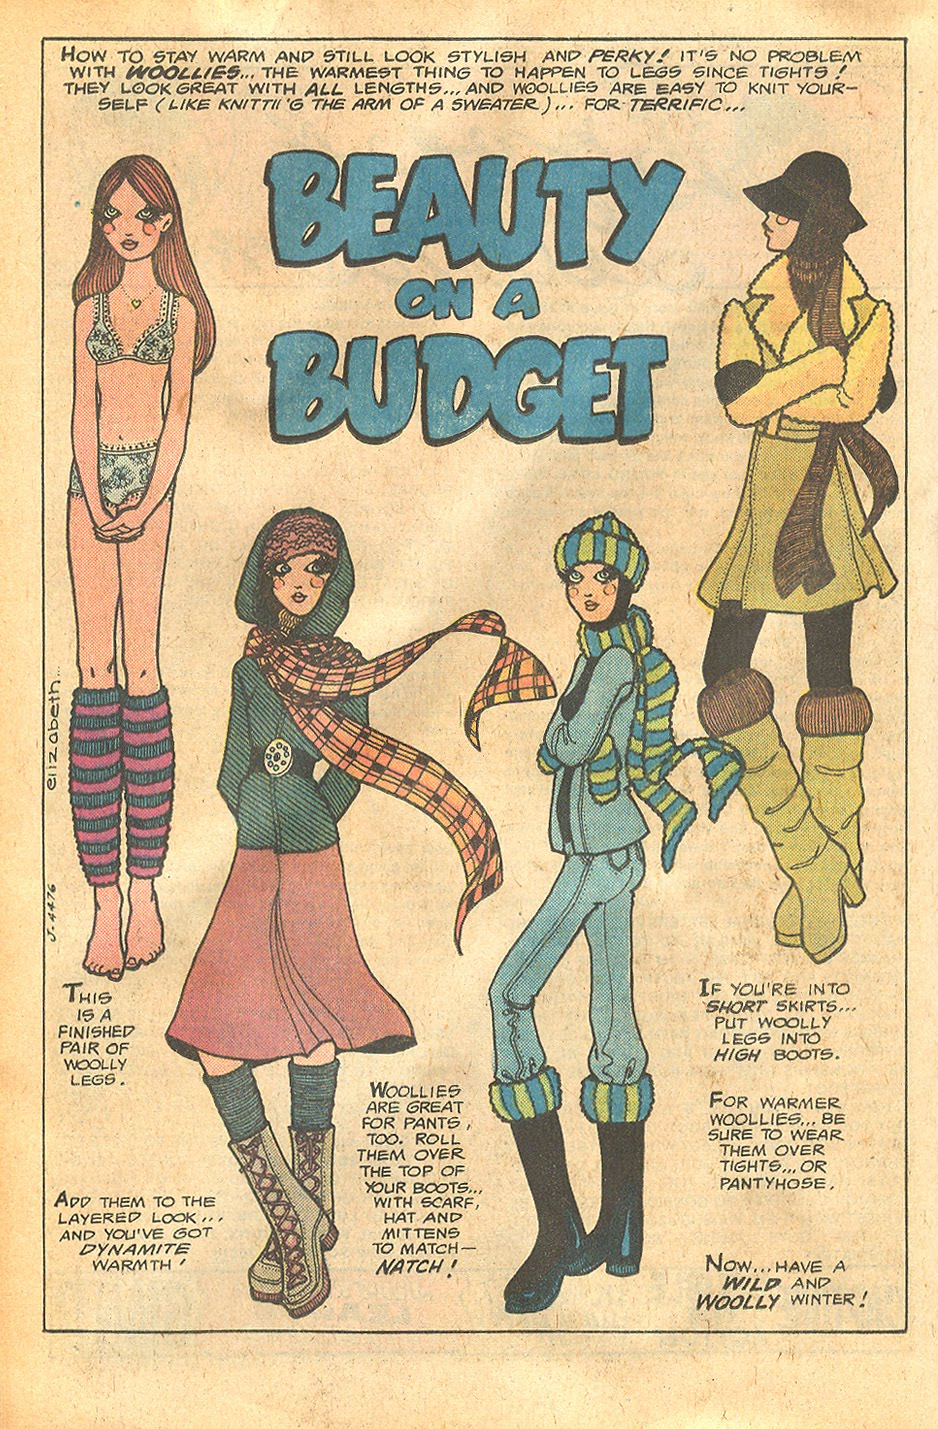 """Beauty on a Budget"" by Elizabeth  Young Love  #124 (March 1977)"